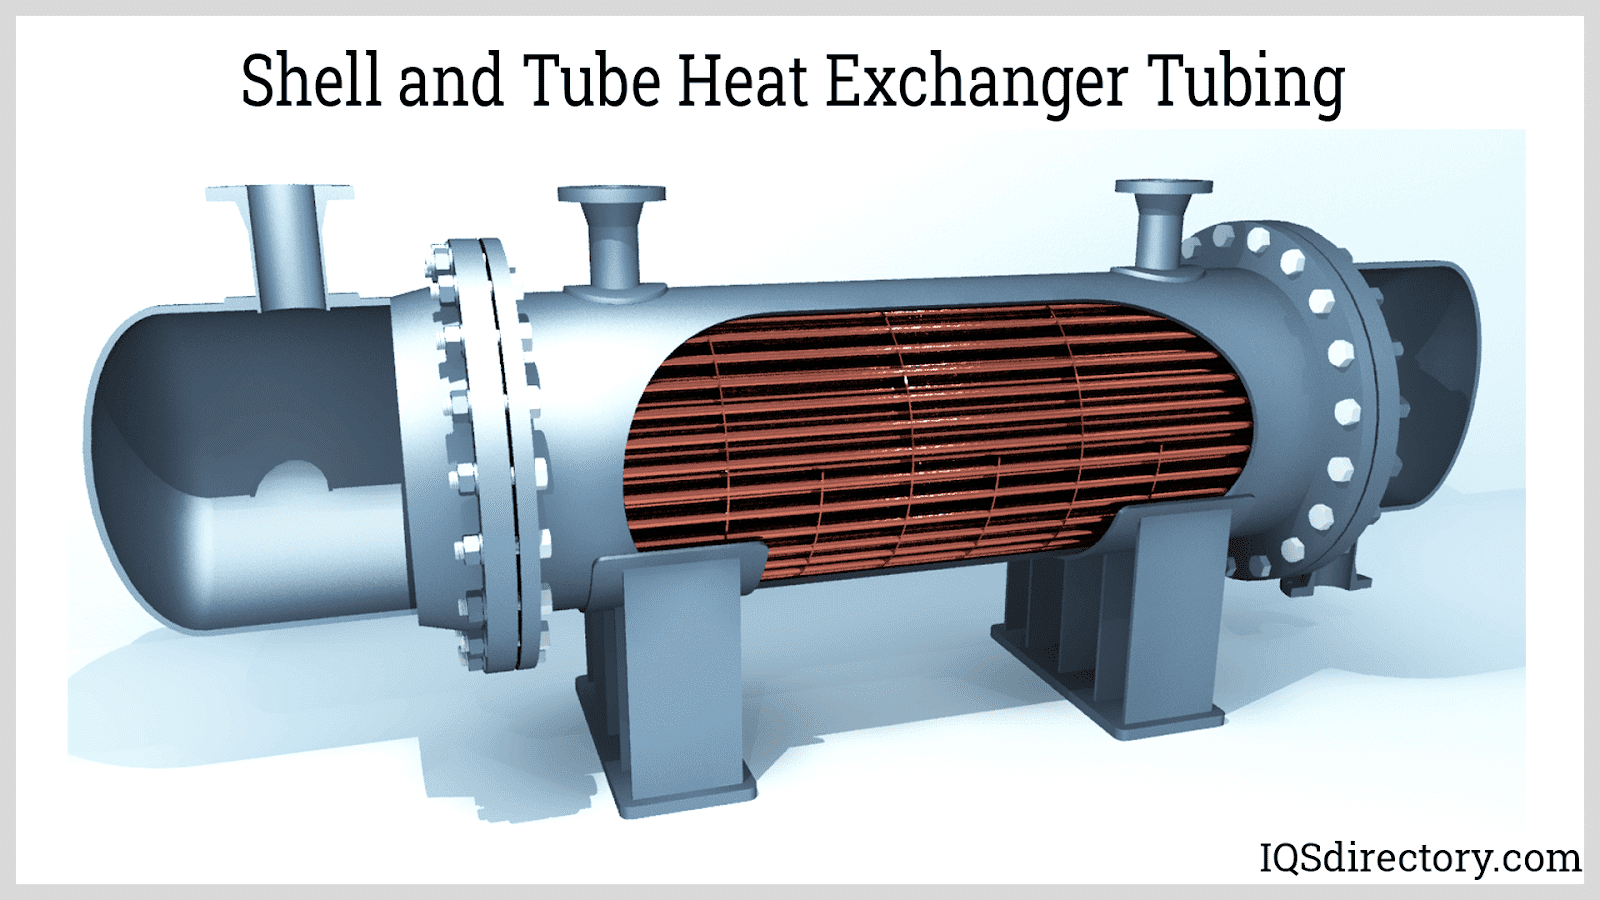 Shell and Tube Heat Exchanger Tubing